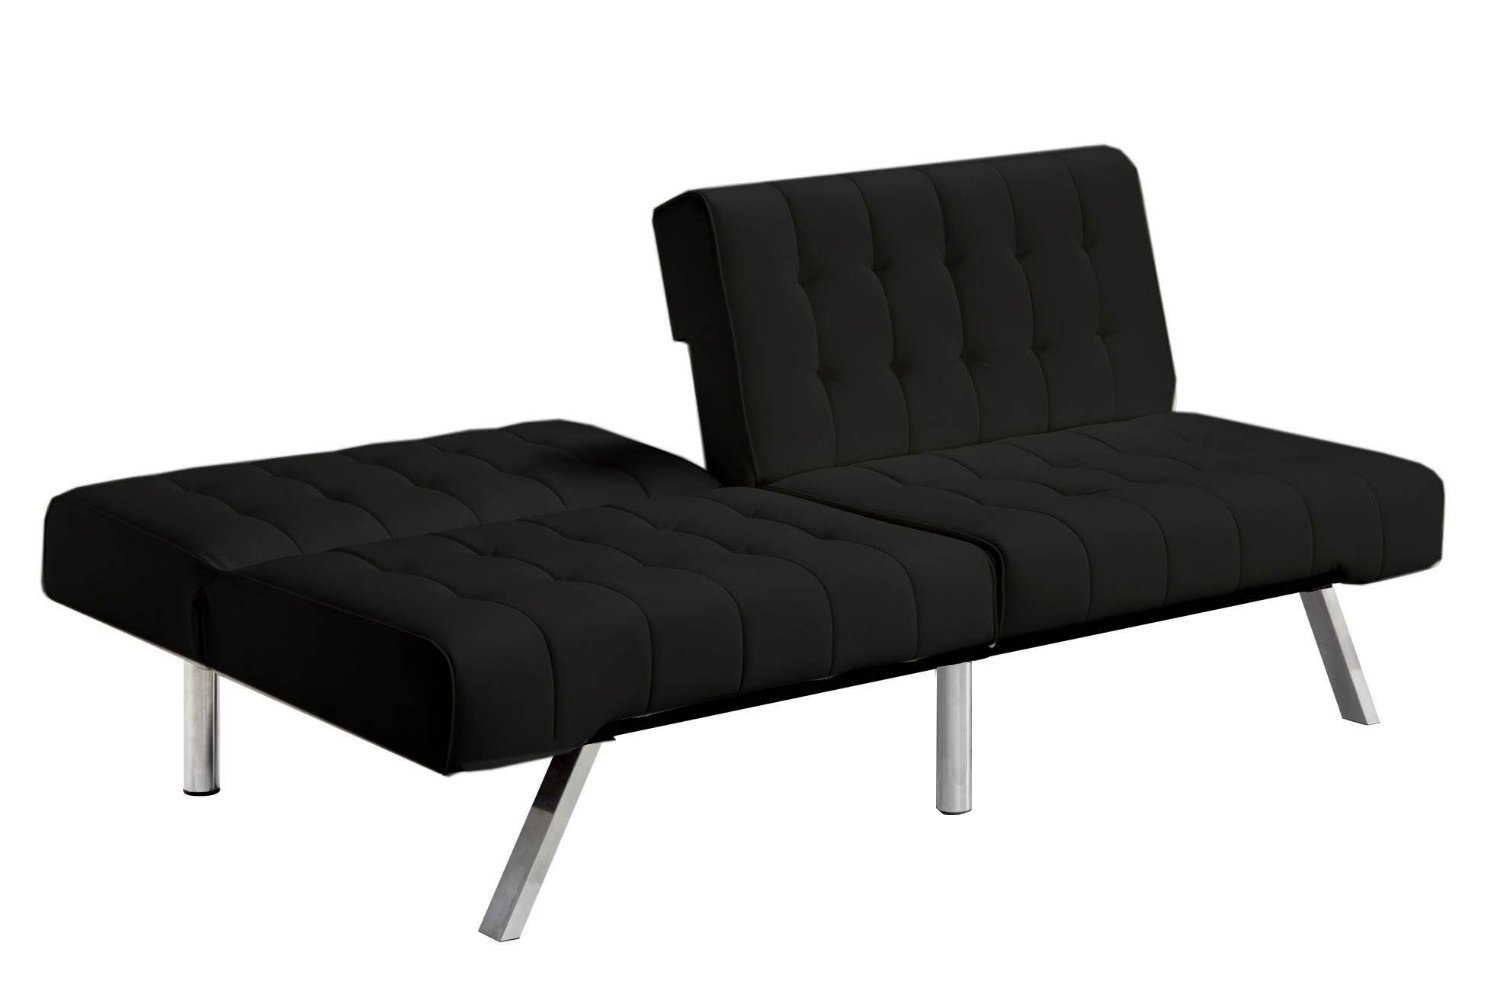 Divano Sceslong.Divano Roma Furniture Modern Convertible Futon Tufted Sofa Bed Black